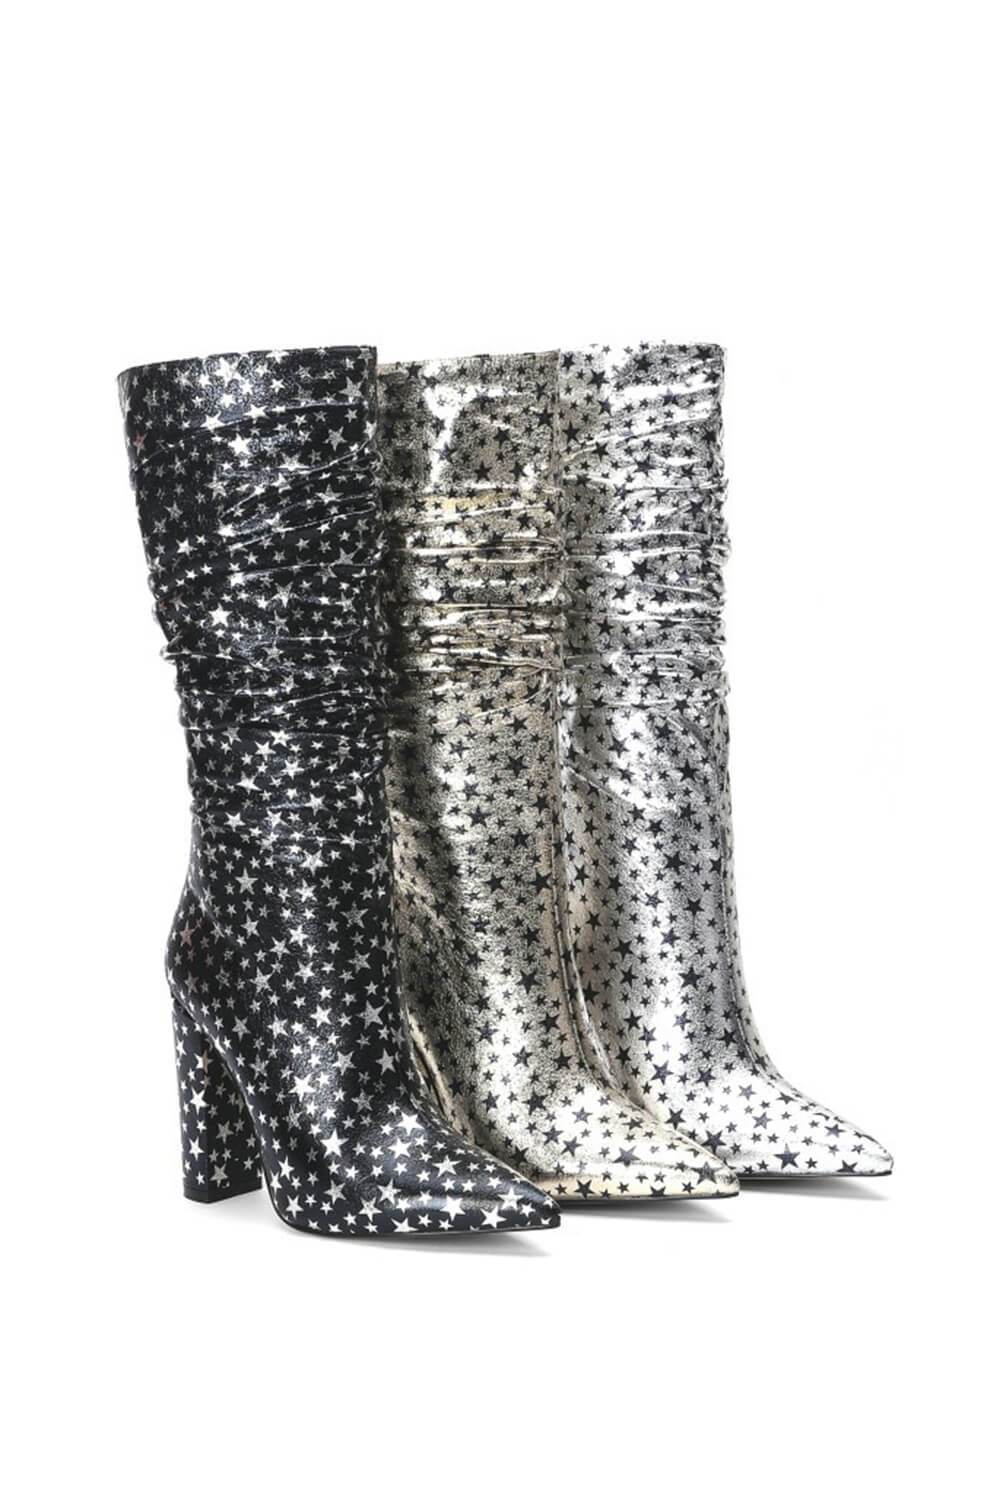 Metallic Silver Glitter Star Ruched Kee High Boots (4307981271099)